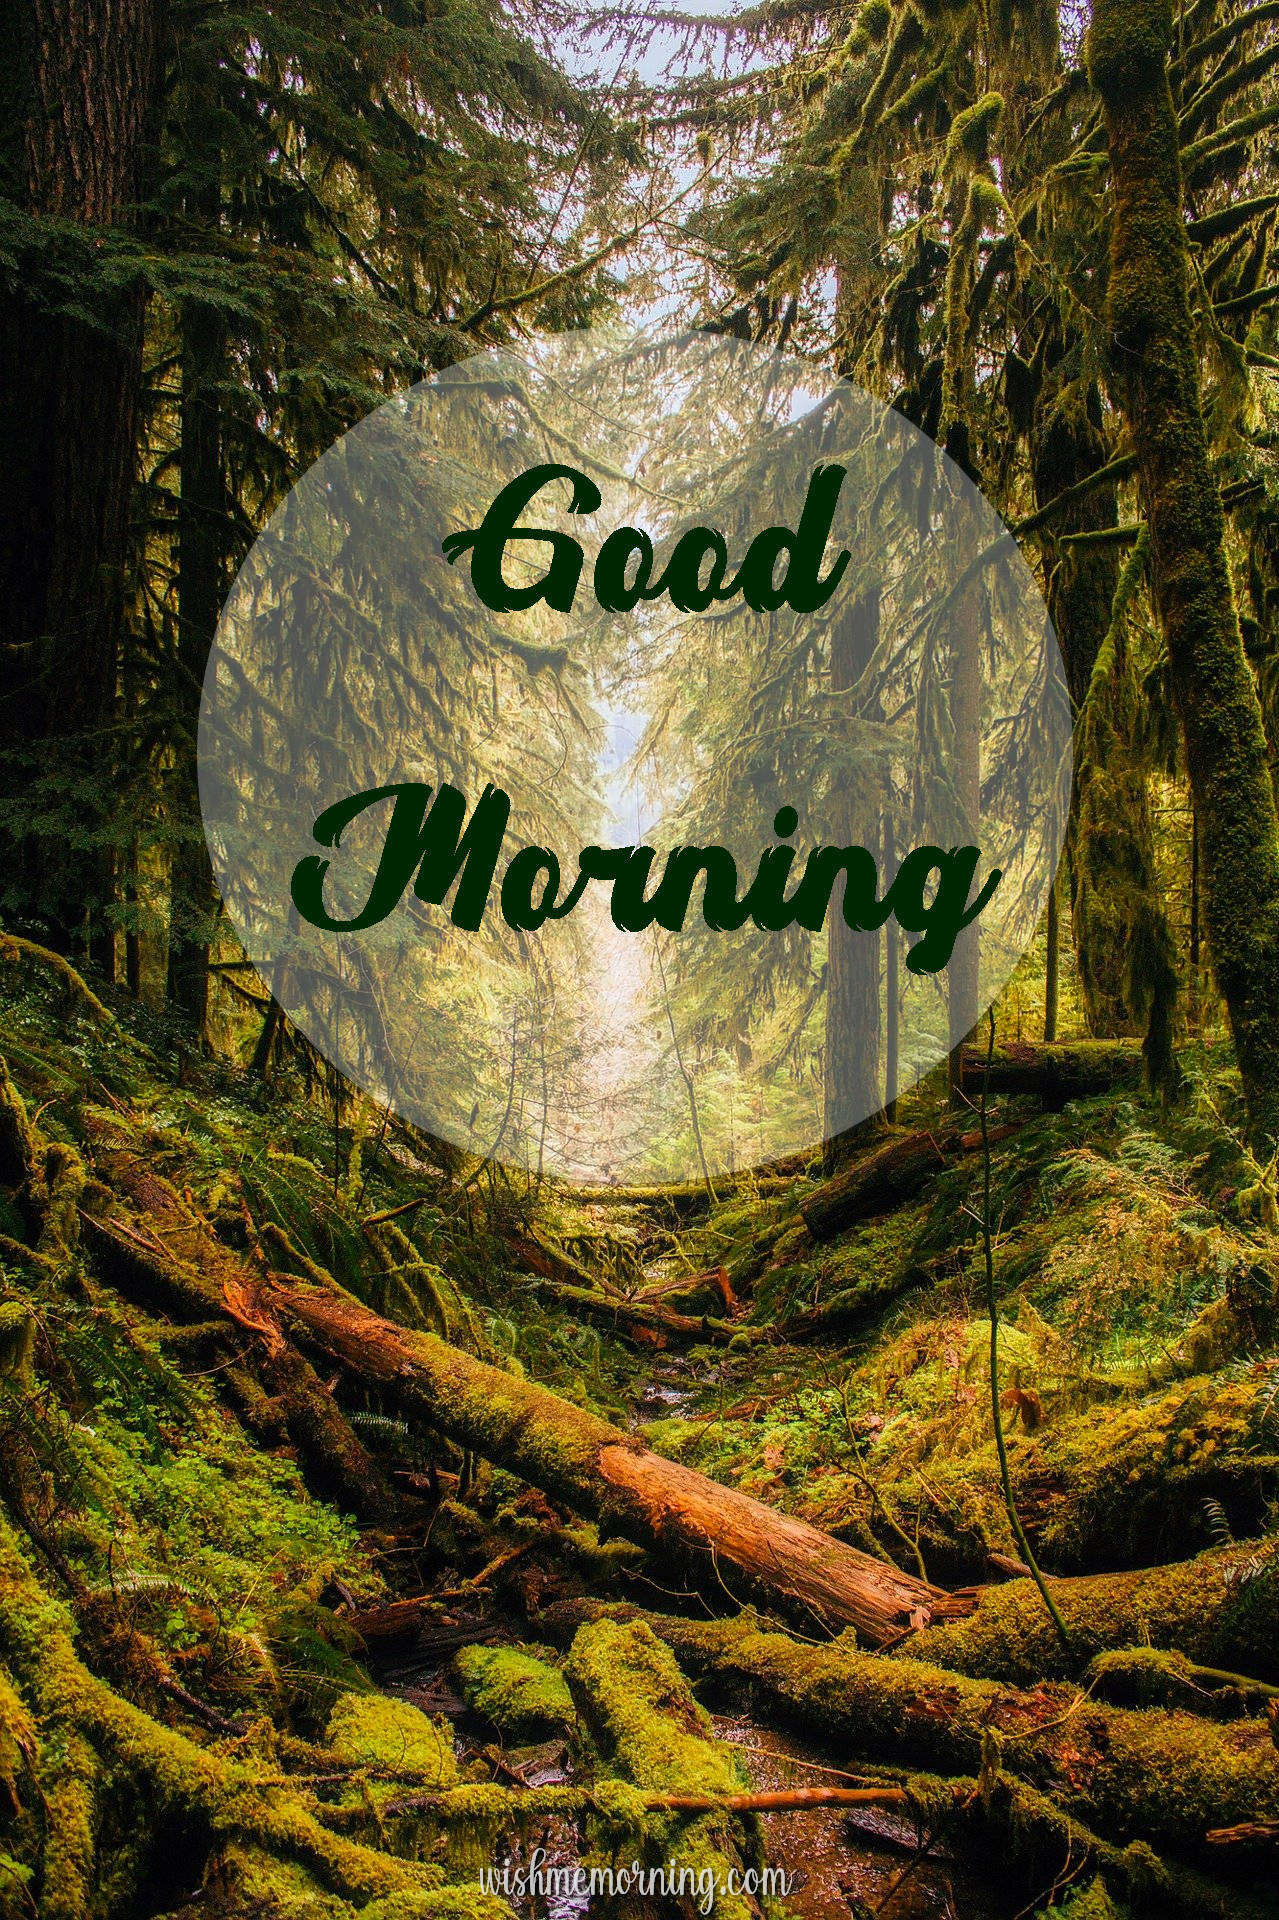 Beautiful Trees Woods Nature Images Wishes wishmemorning.com 18